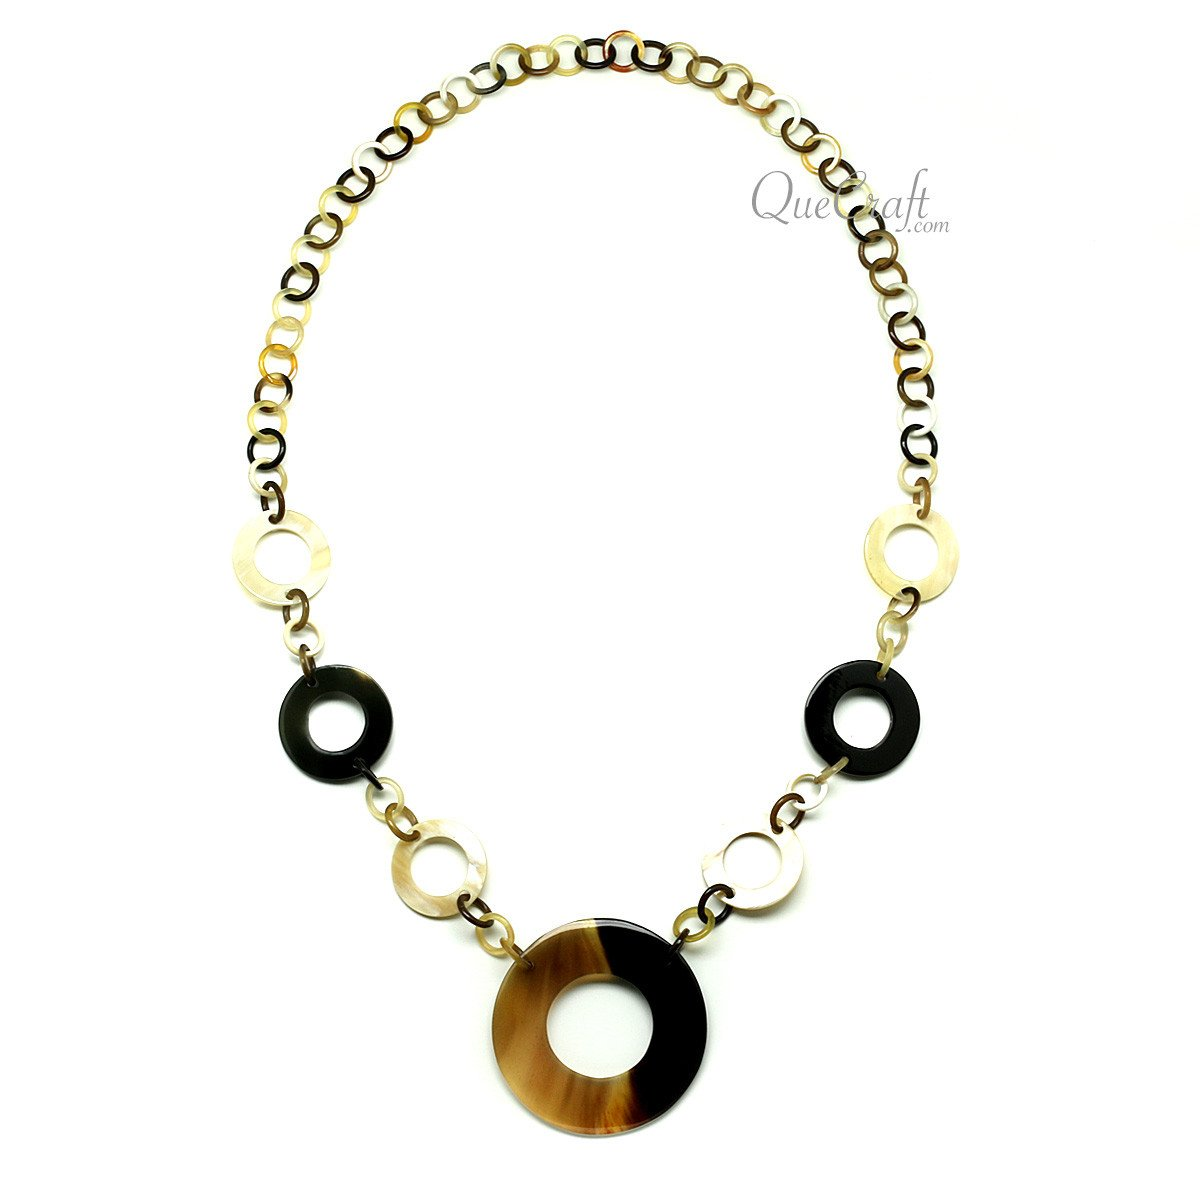 Horn Chain Necklace #10082 - HORN.JEWELRY